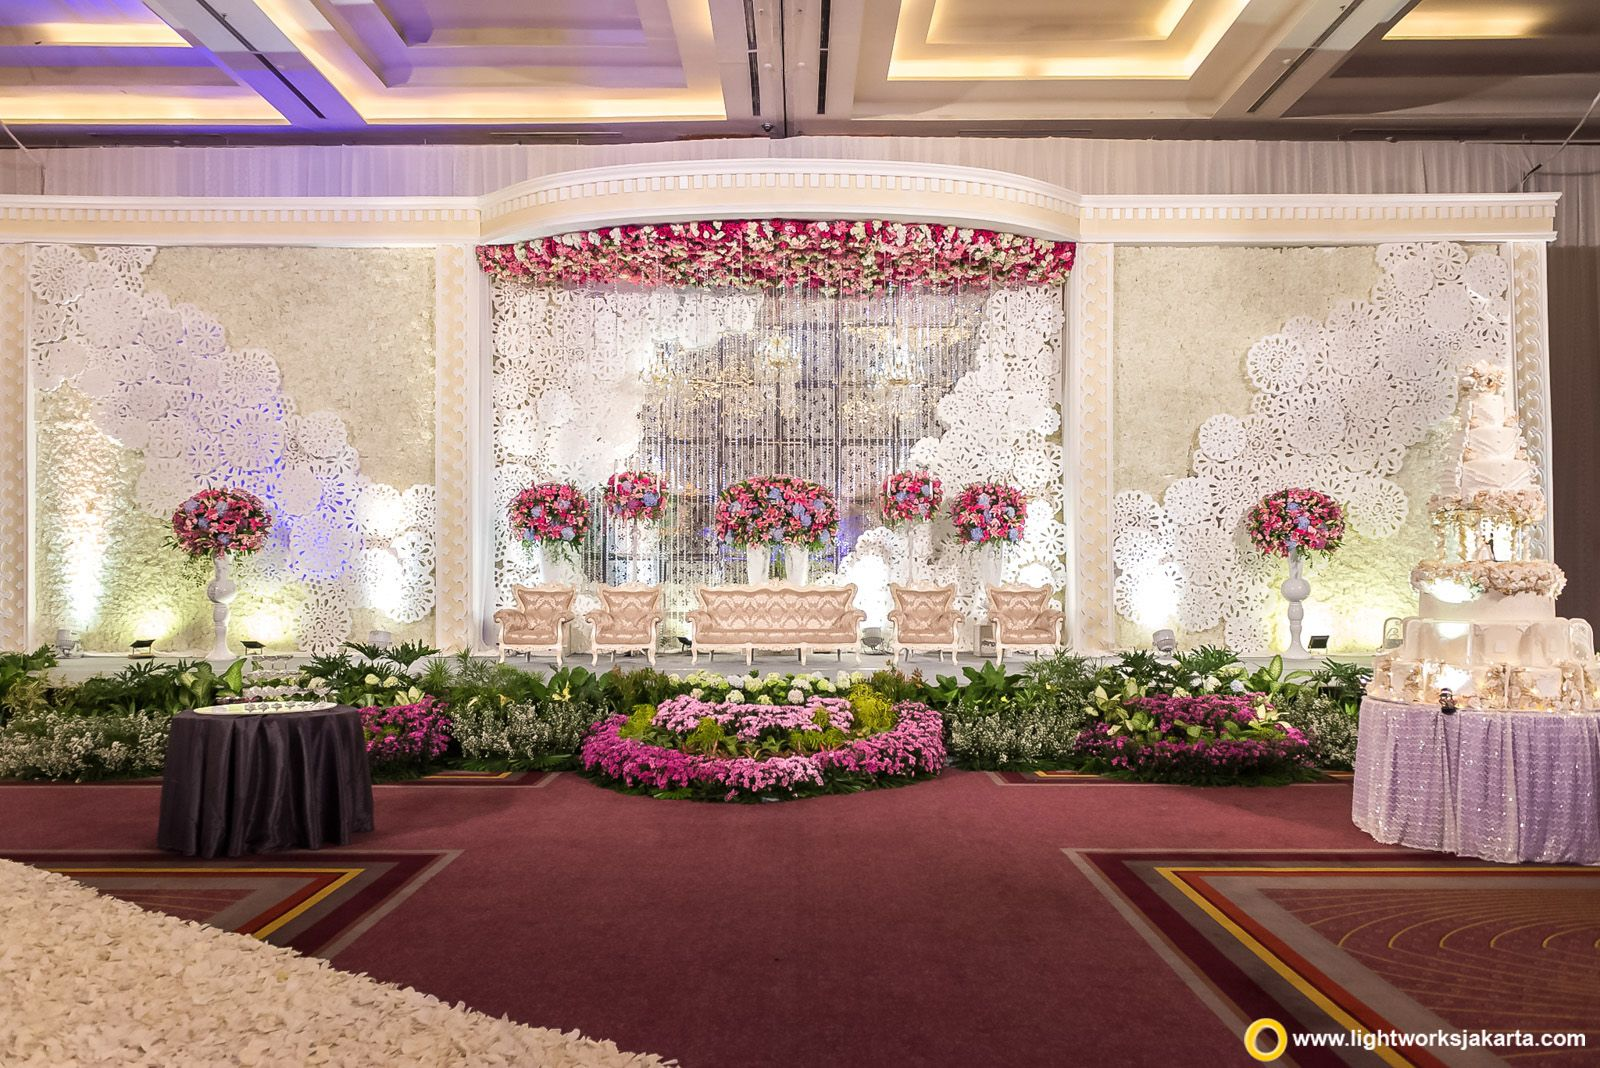 Amazing stage decor floral installations floral walls amazing stage decor floral installations floral walls decorated with cutouts large flower vases pink and white flowers indoor wedding decor ideas junglespirit Gallery